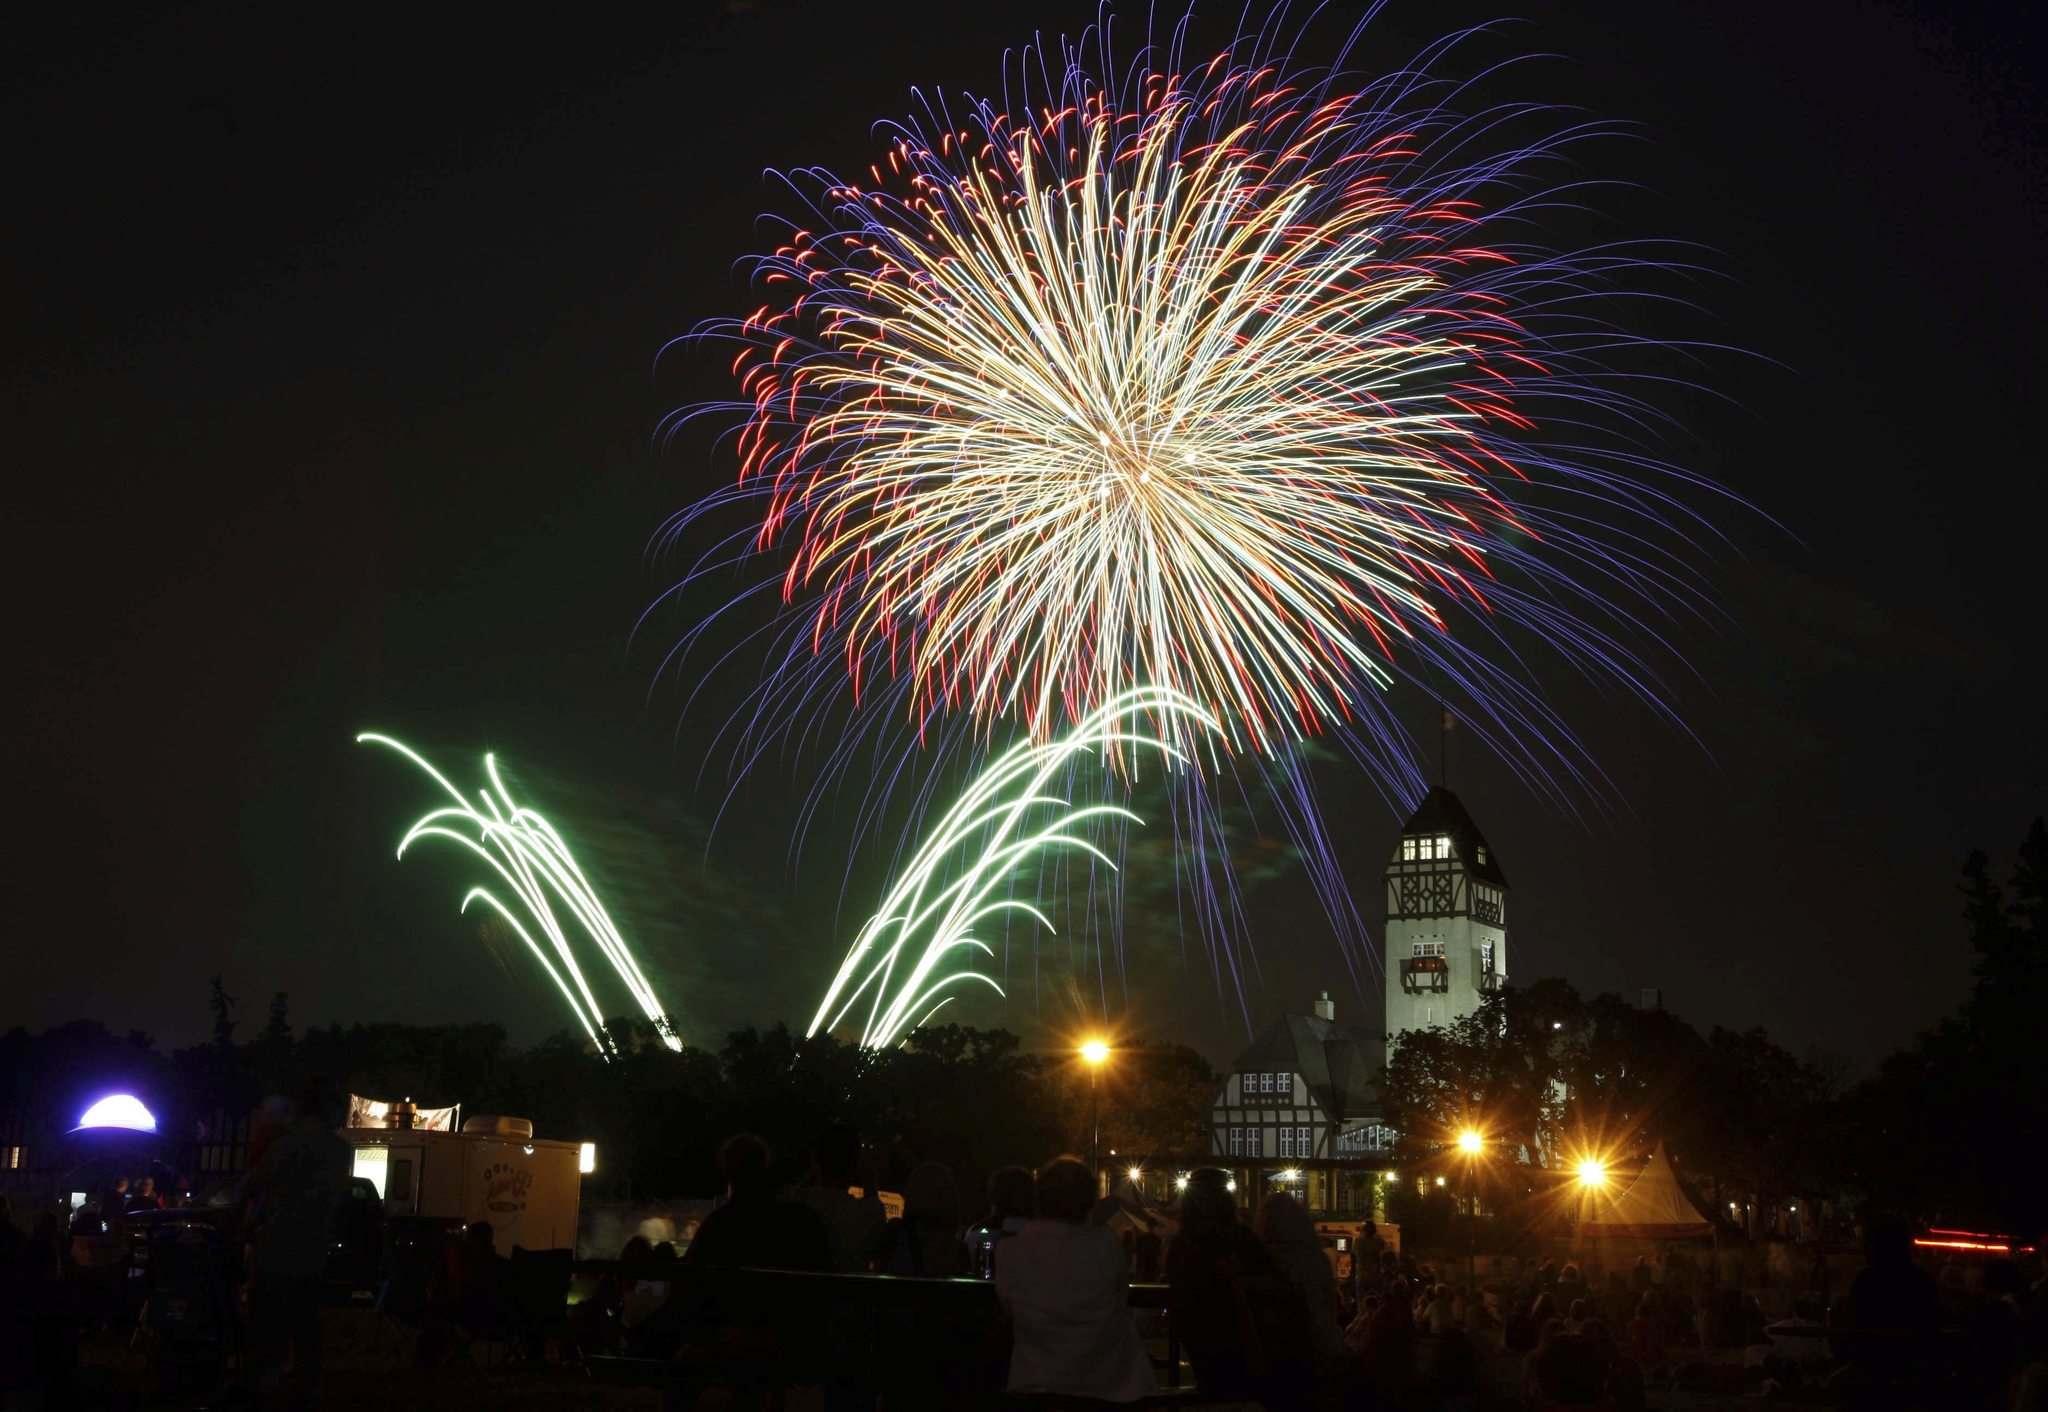 <p>Canada Day fireworks at Assiniboine Park</p>